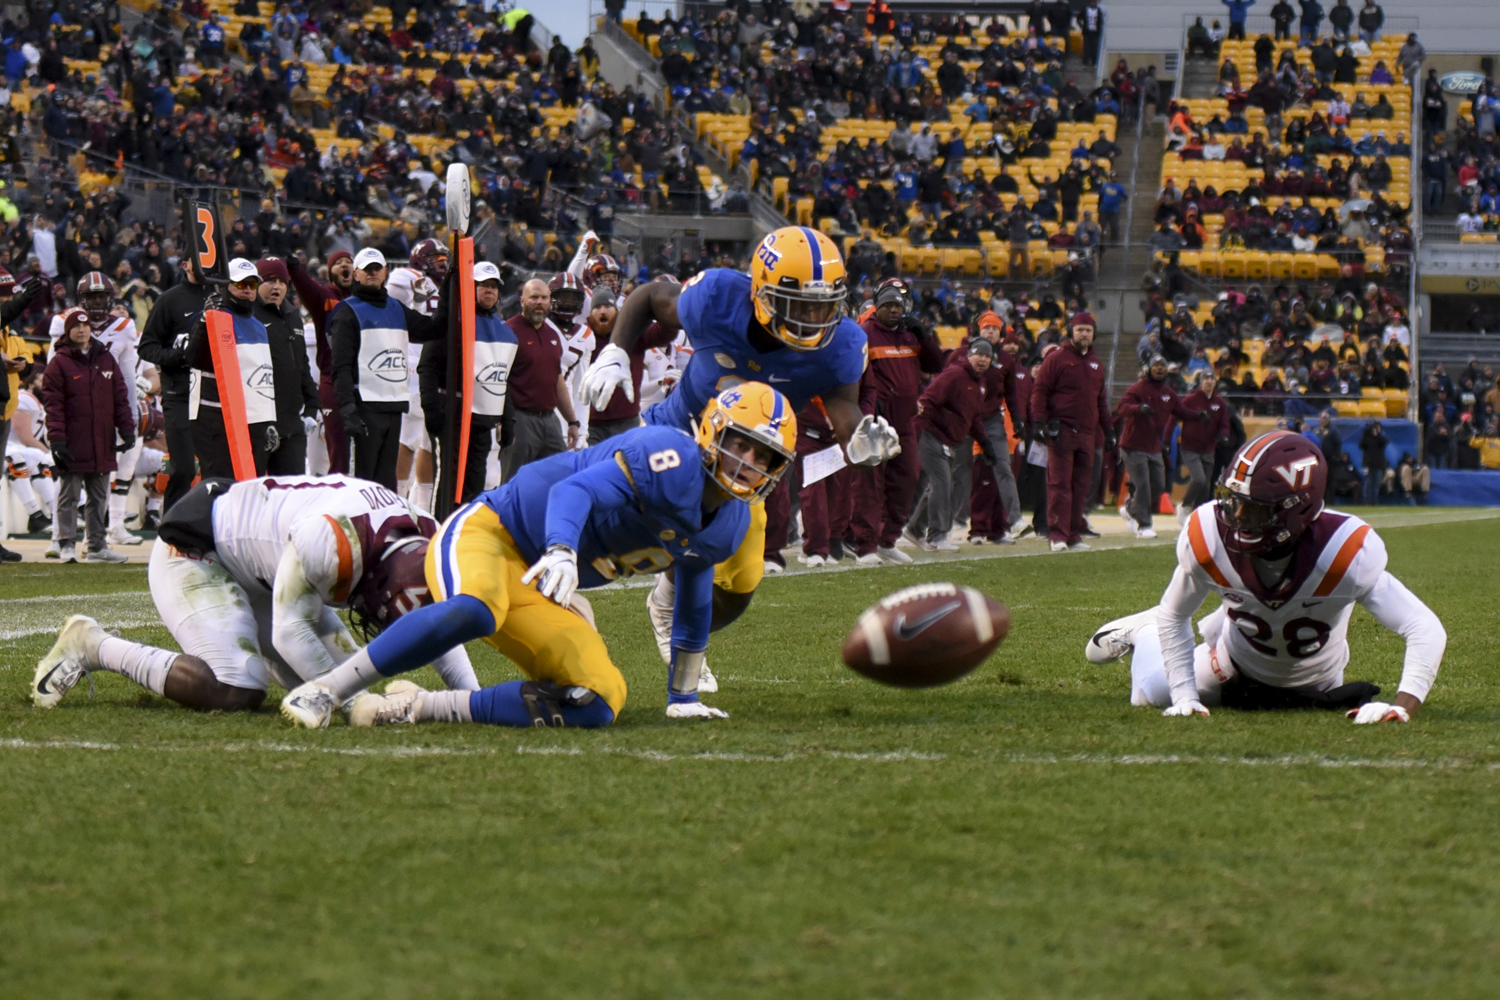 Sophomore quarterback Kenny Pickett fumbles the ball during Pitt's game against Virginia Tech earlier this month.